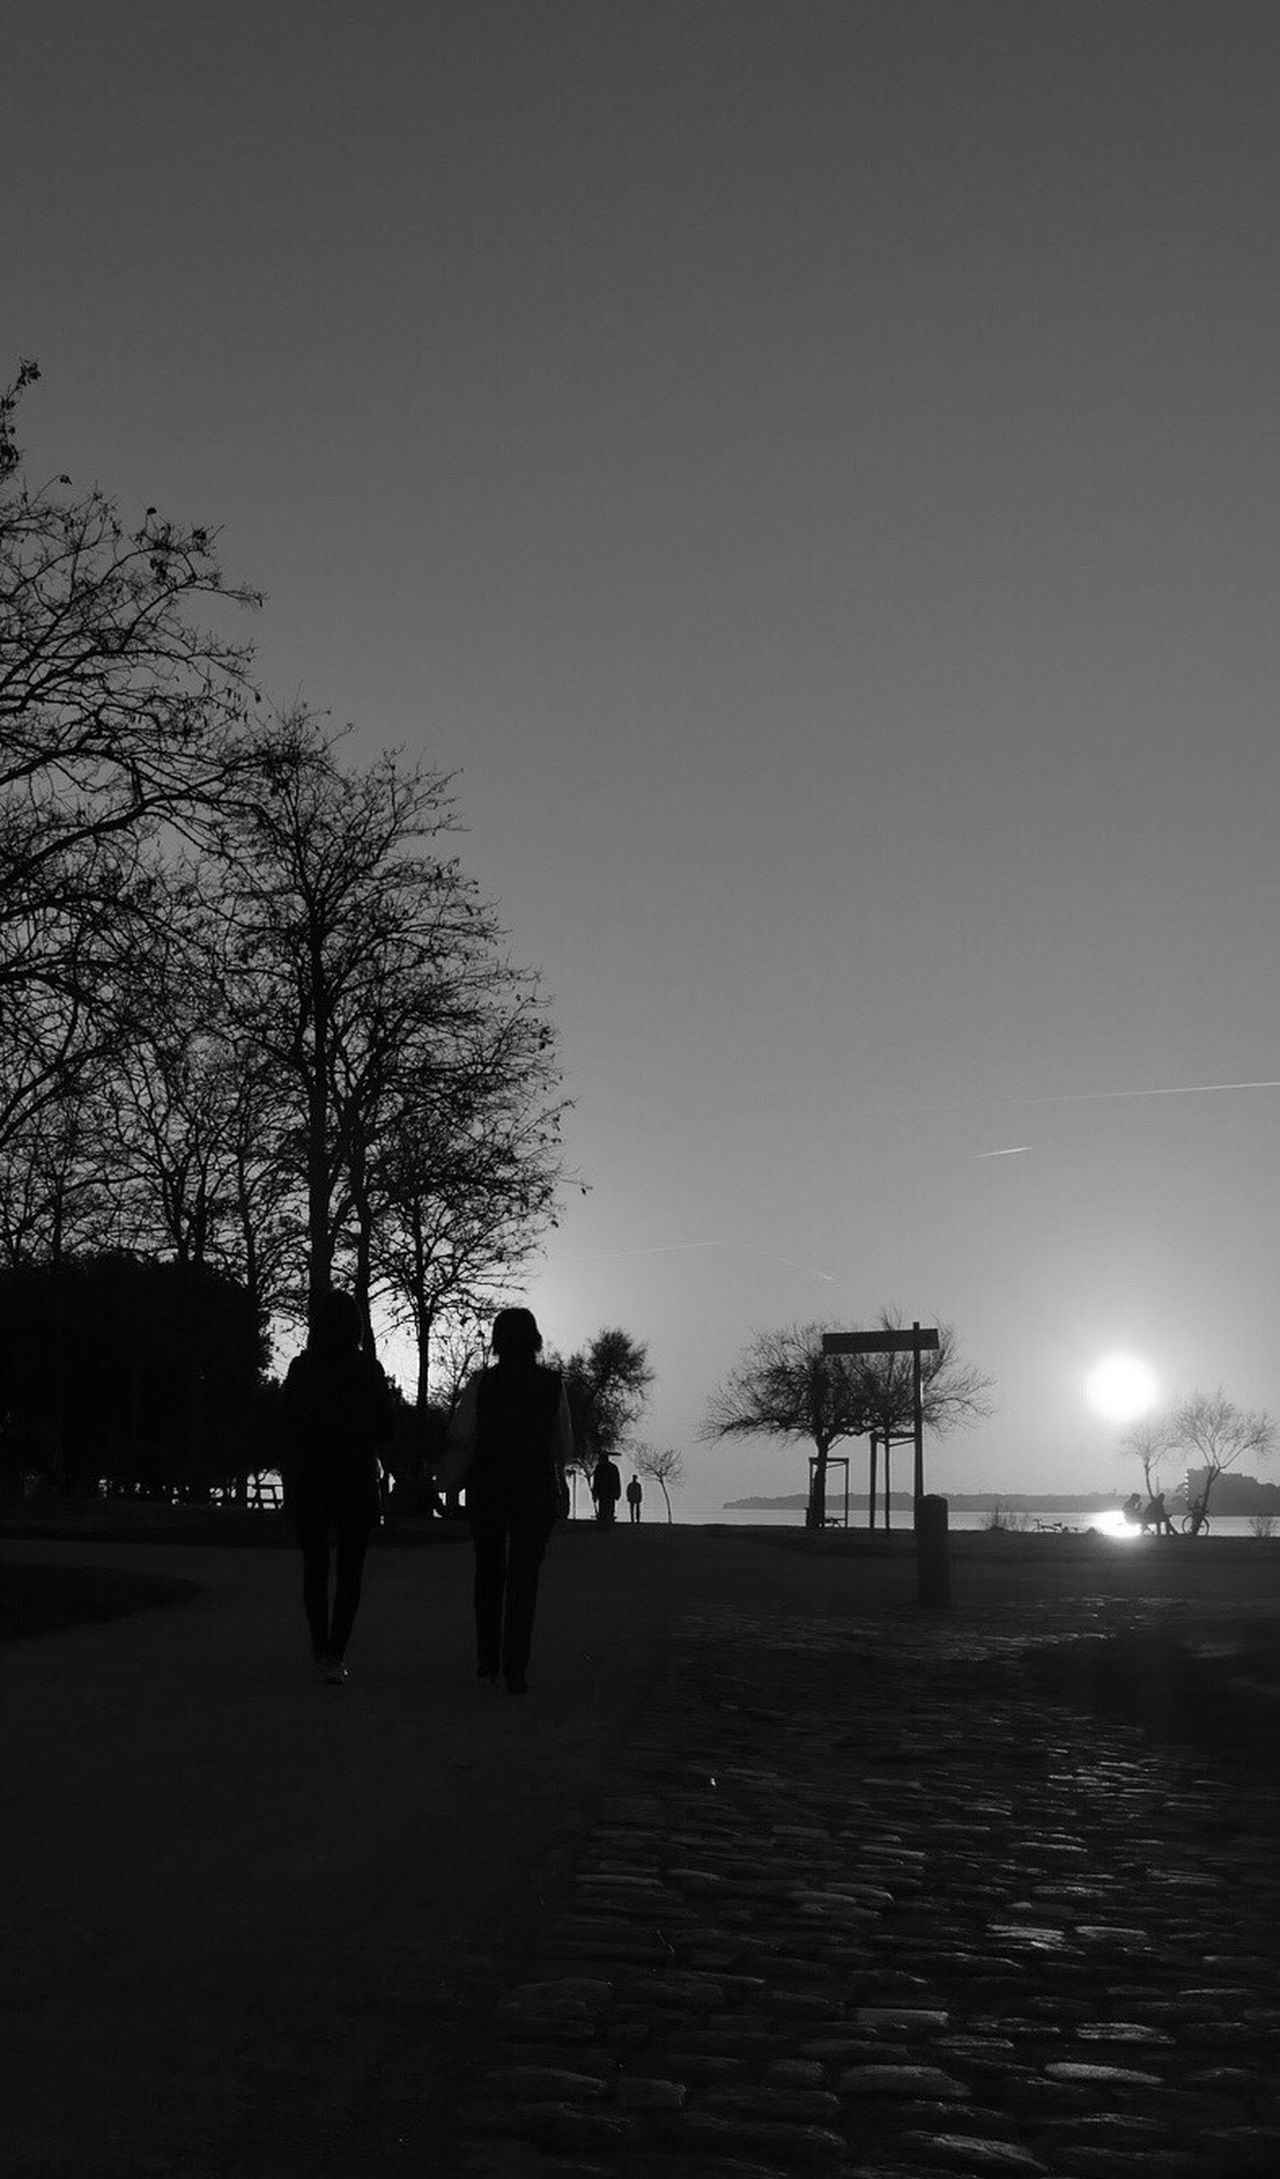 Blackandwhite People Walking  Sunset Real People Tree Walking Lifestyles Leisure Activity Sky Women Outdoors Men Clear Sky Nature Day Architecture People Adult